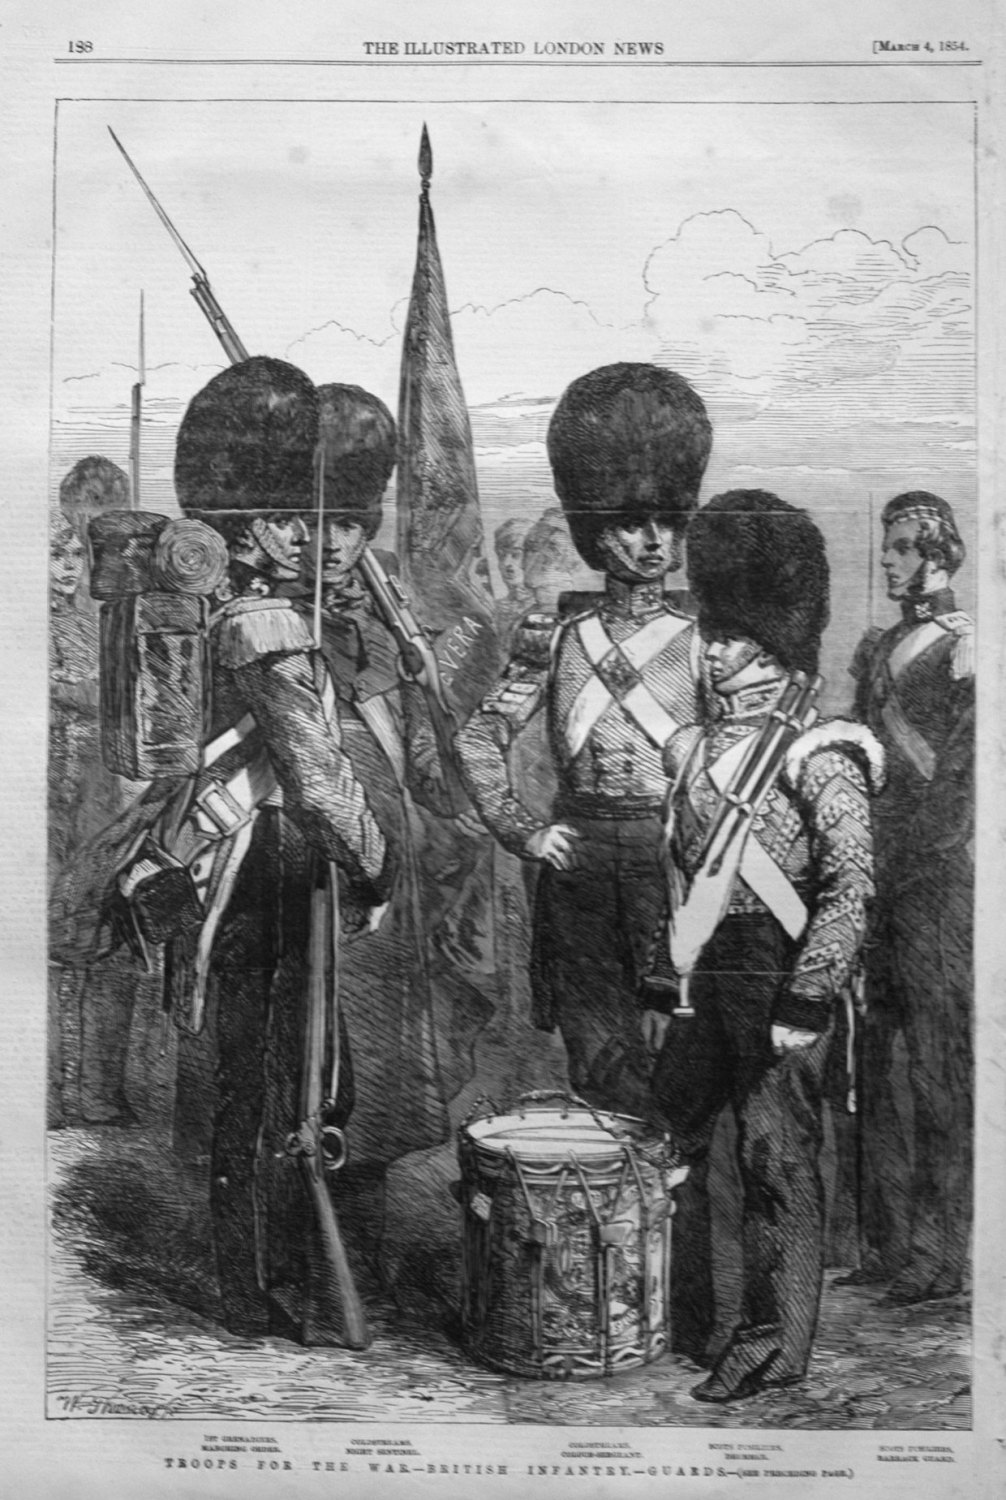 Troops for the War .-British Infantry. - Guards. 1854.